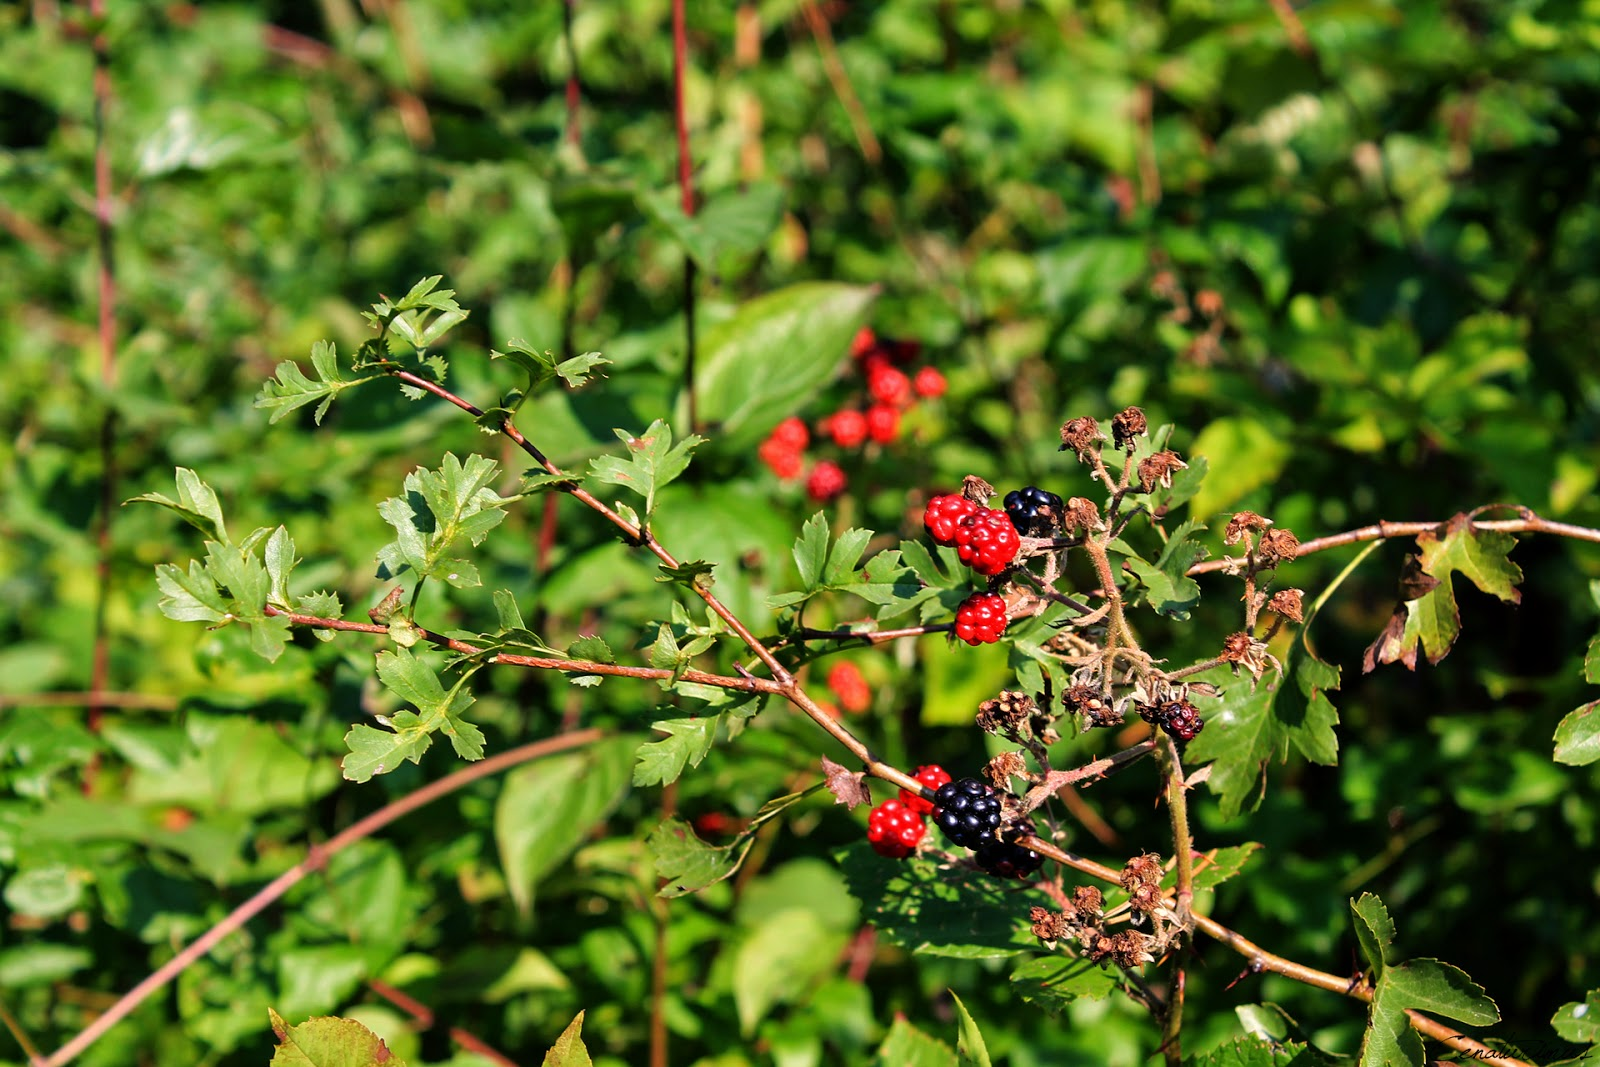 Ripe blackberries in Vienna Woods